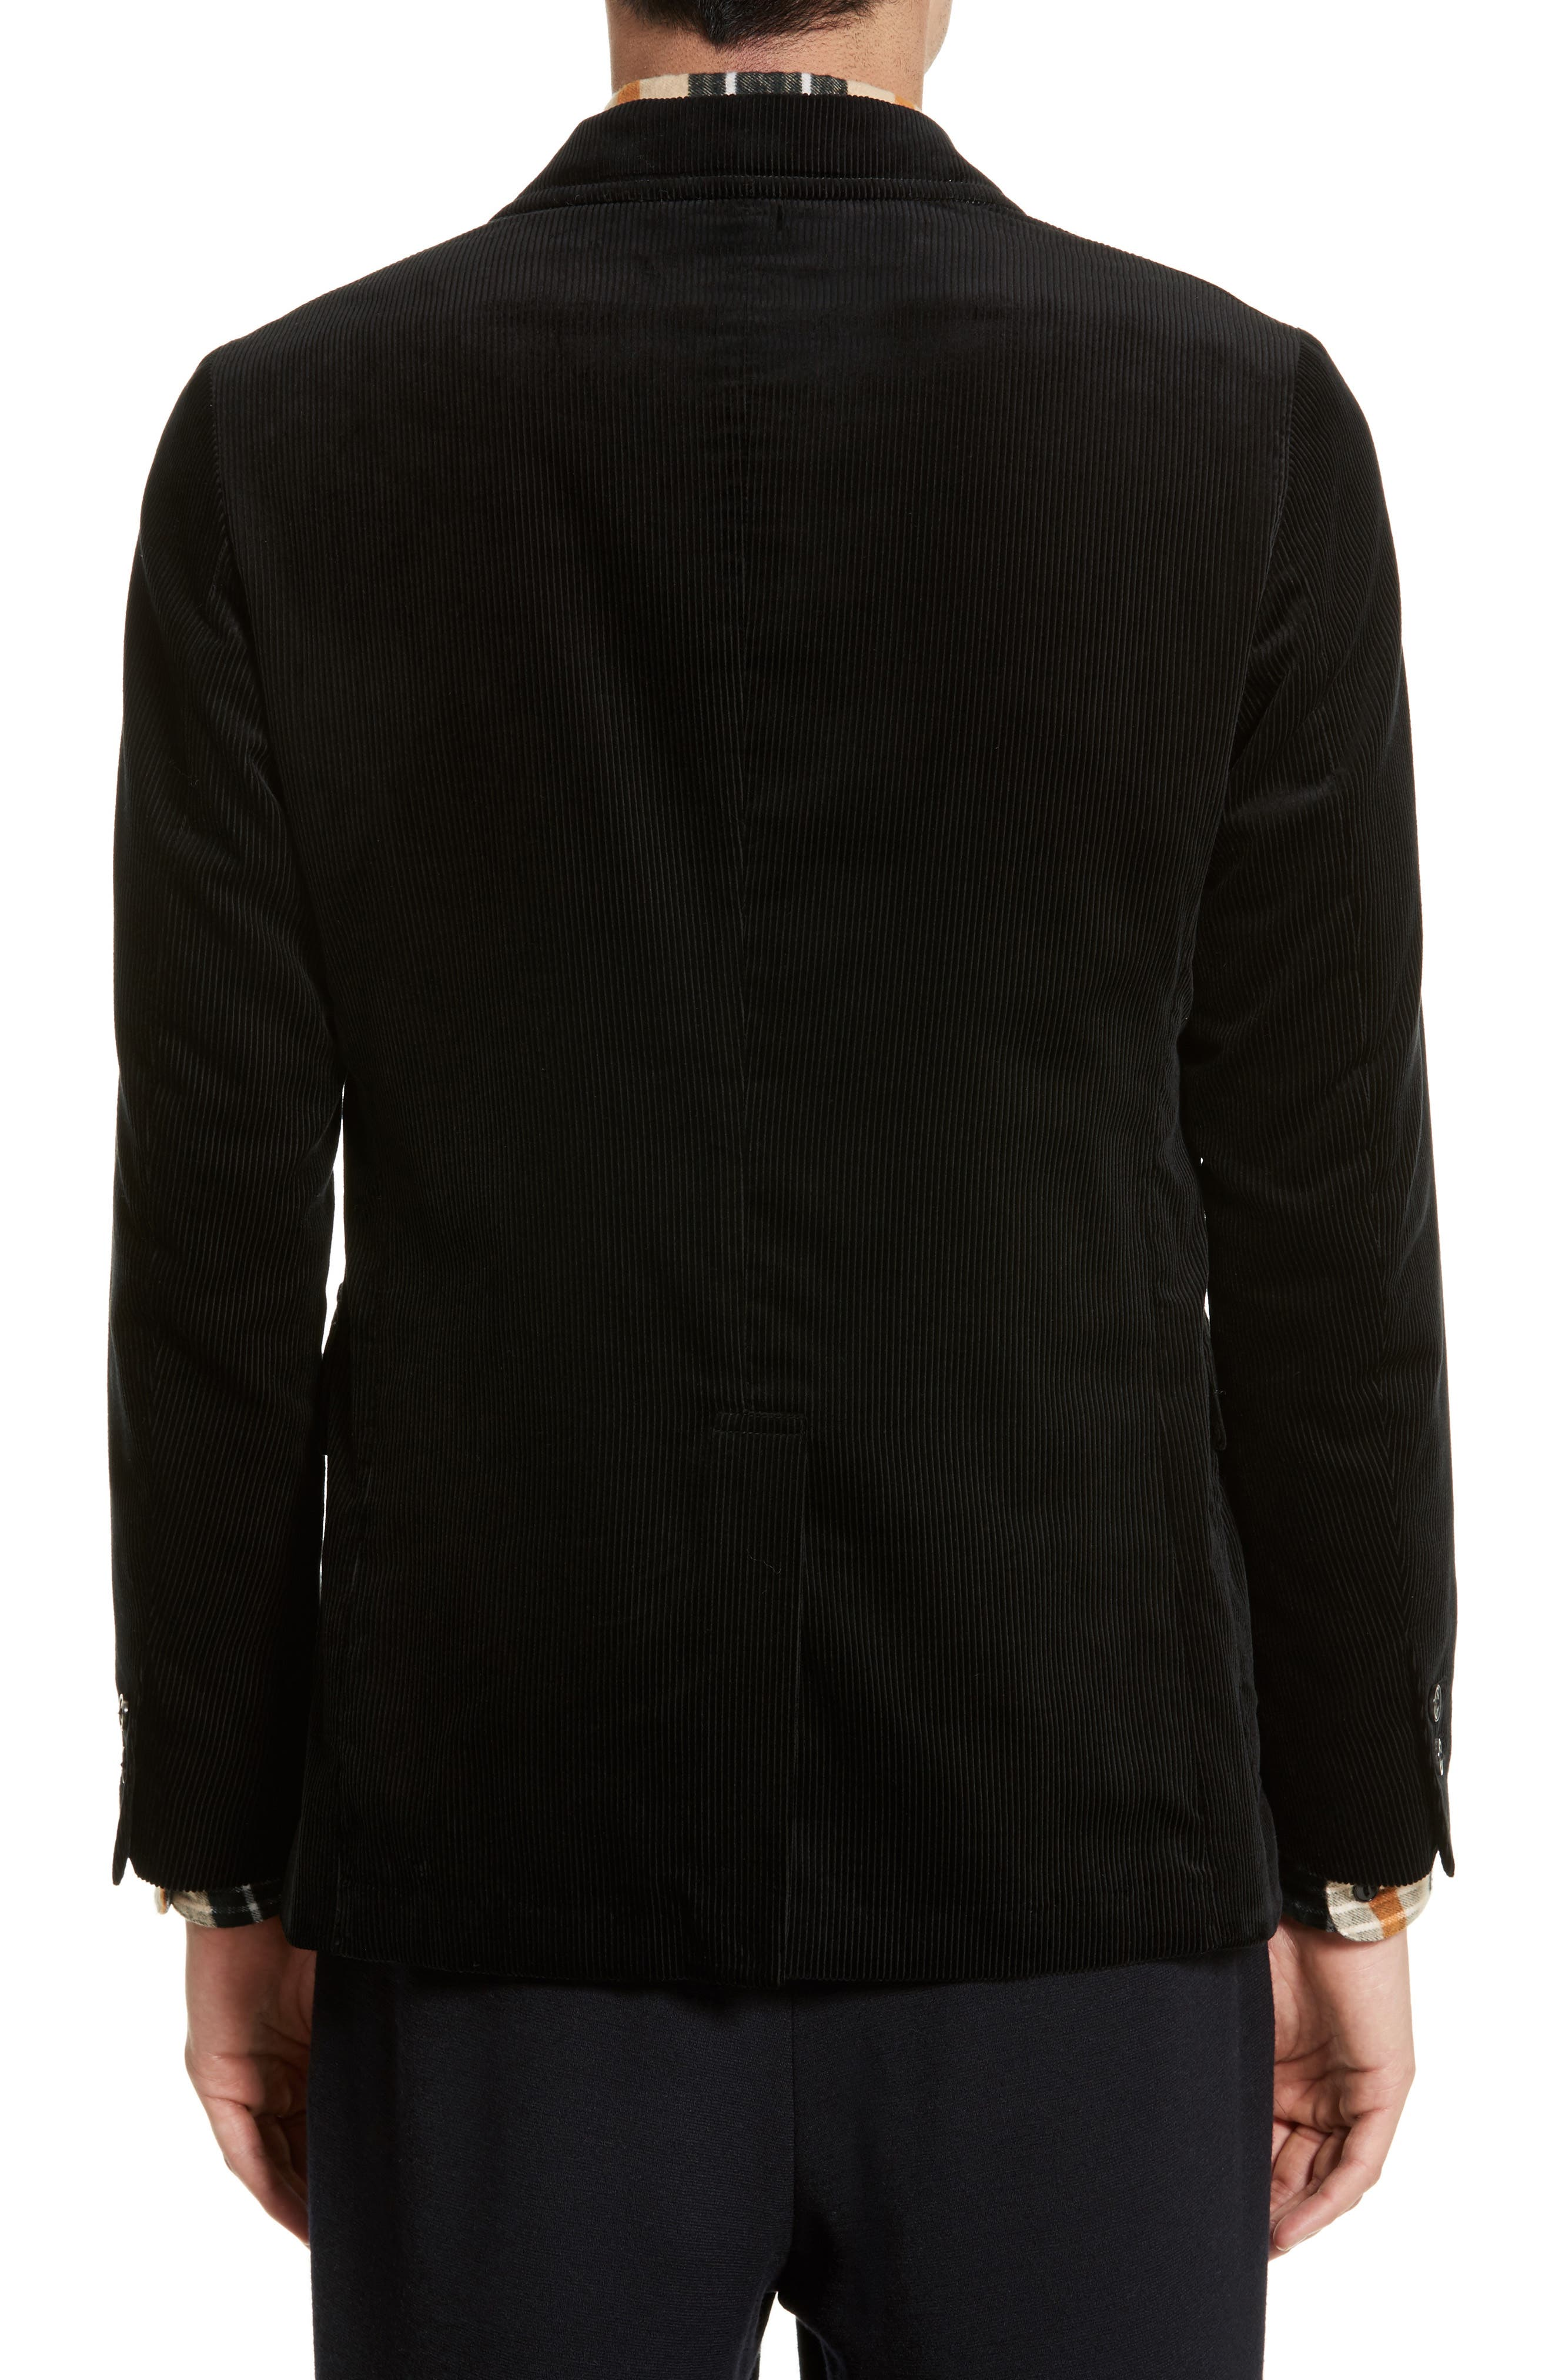 Sea Island Corduroy Jacket,                             Alternate thumbnail 2, color,                             Black